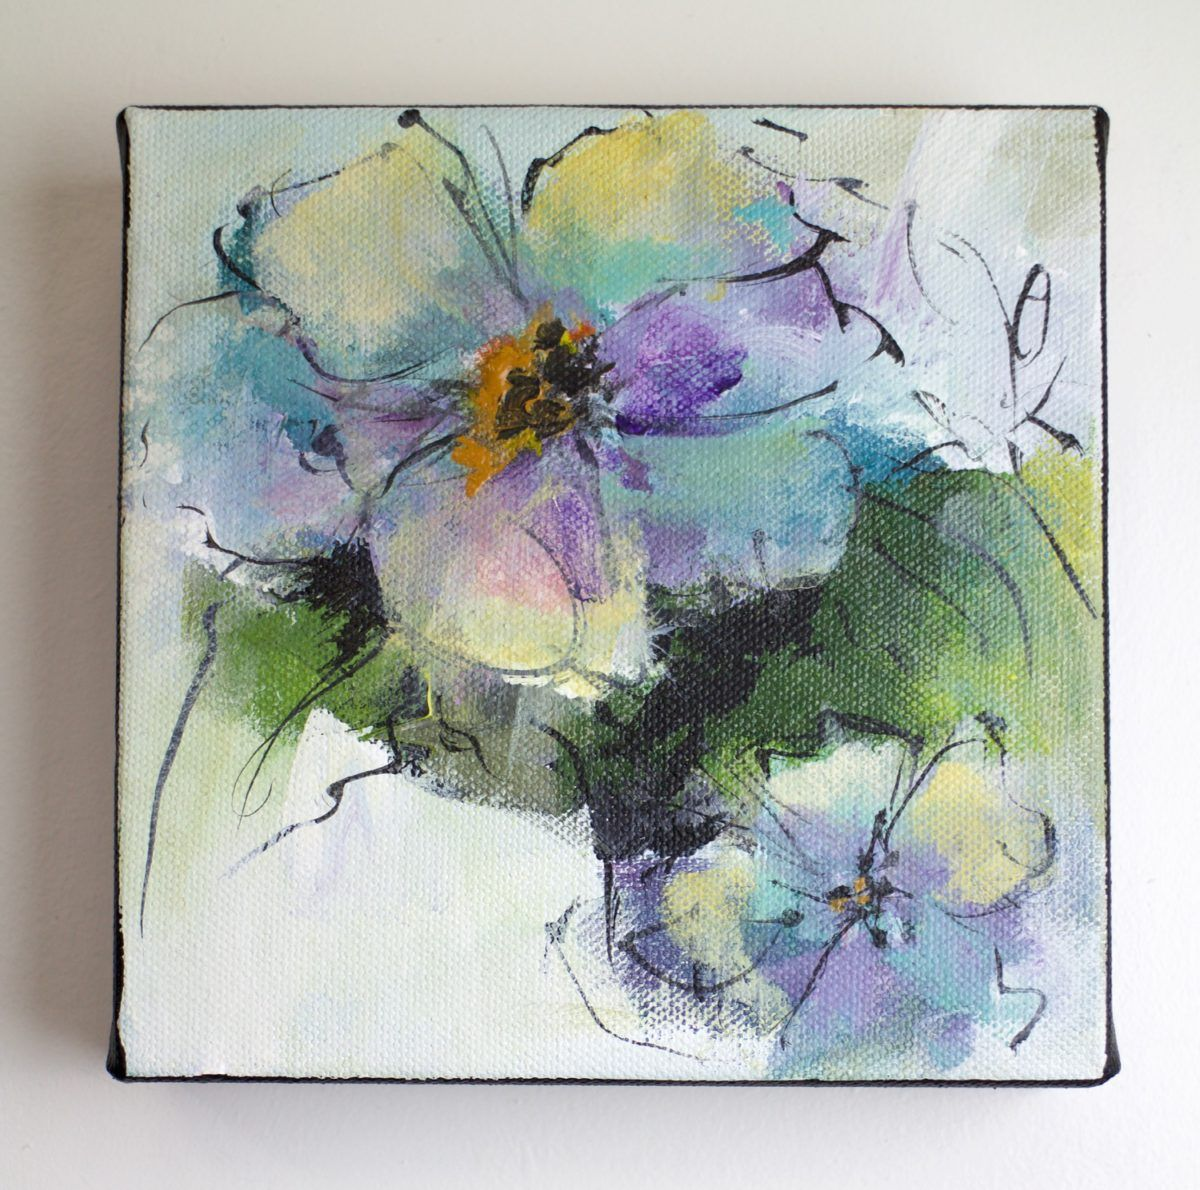 Abf 213 6x6 Price On Requeset Nature Paintings Acrylic Abstract Flower Painting Flower Art